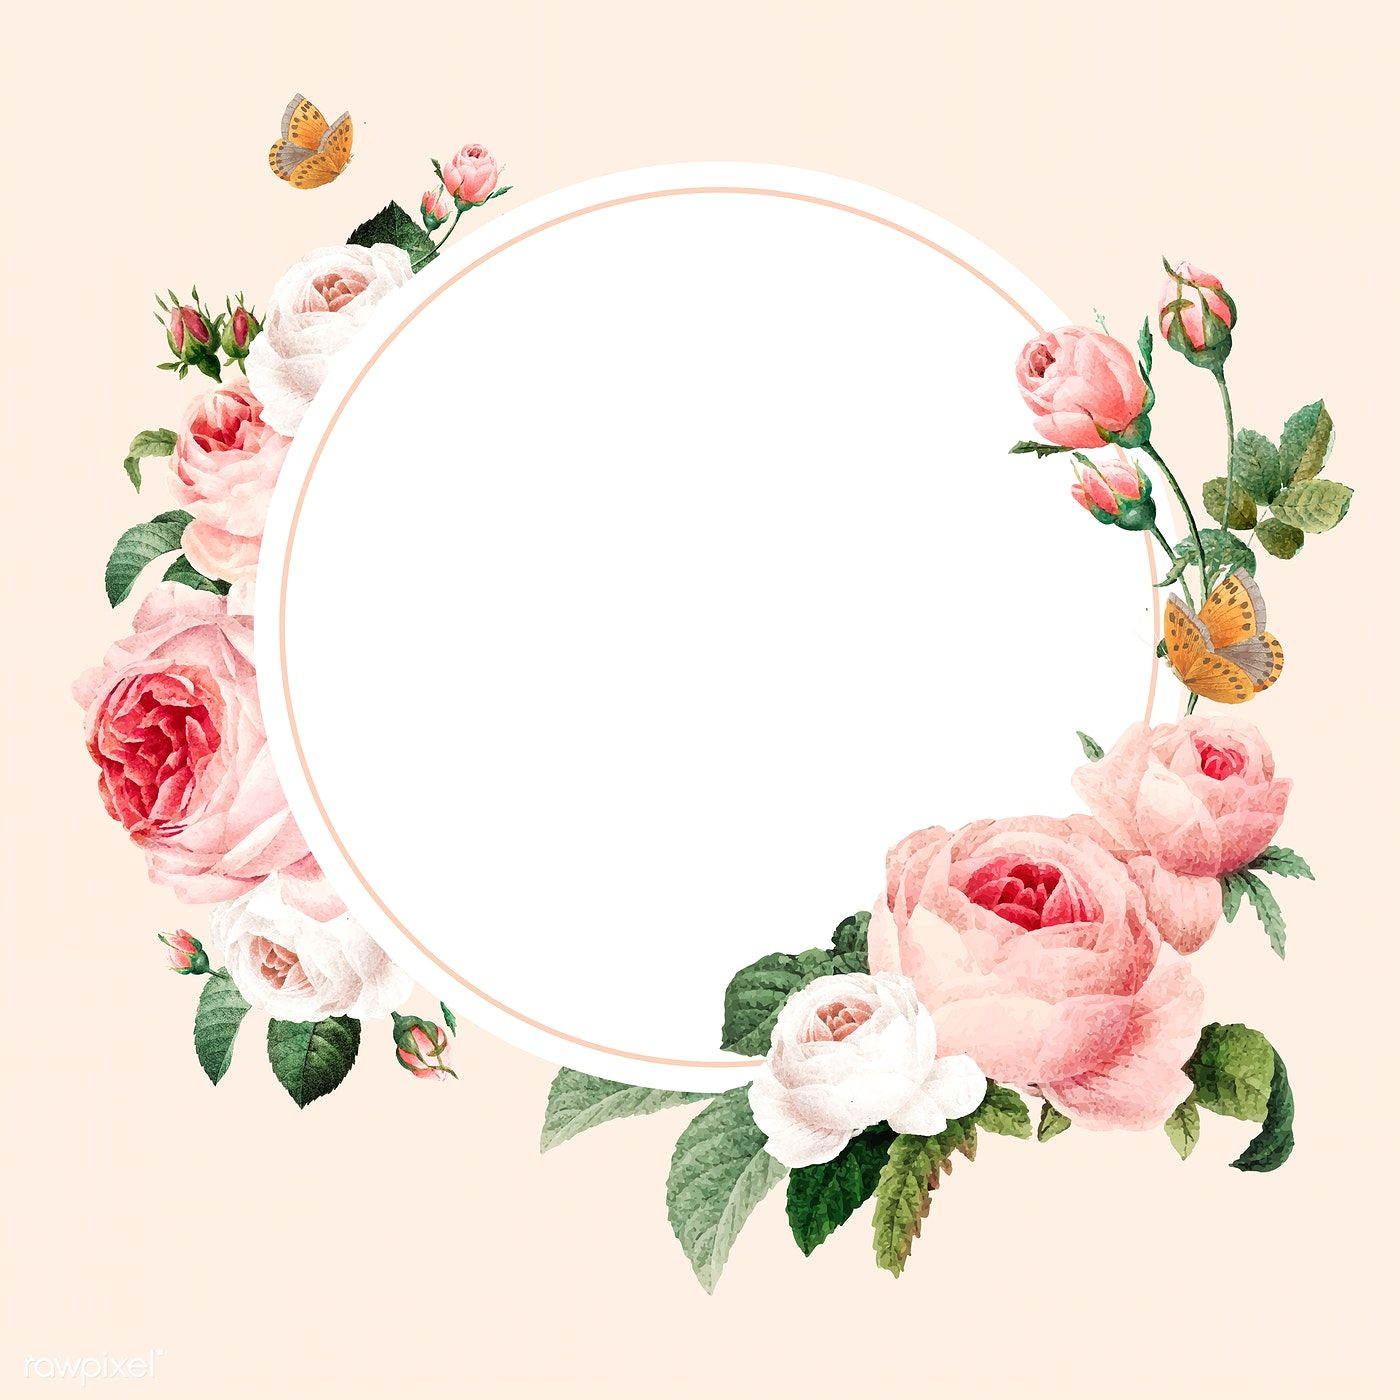 Download premium vector of Blank floral round frame vector